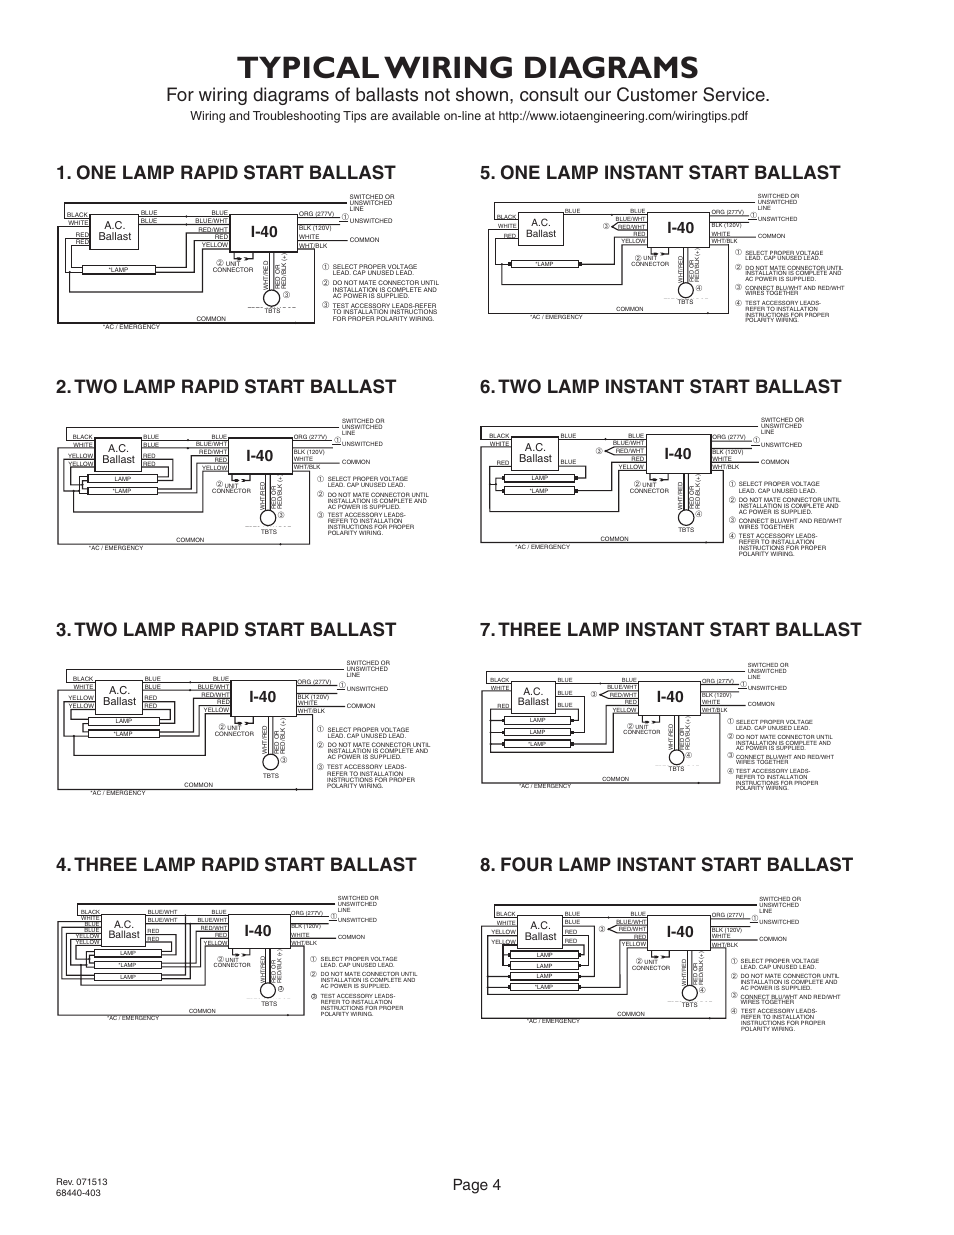 iota i 24 emergency ballast wiring diagram allen bradley transformer diagrams typical page 4 40 user manual pagetypical